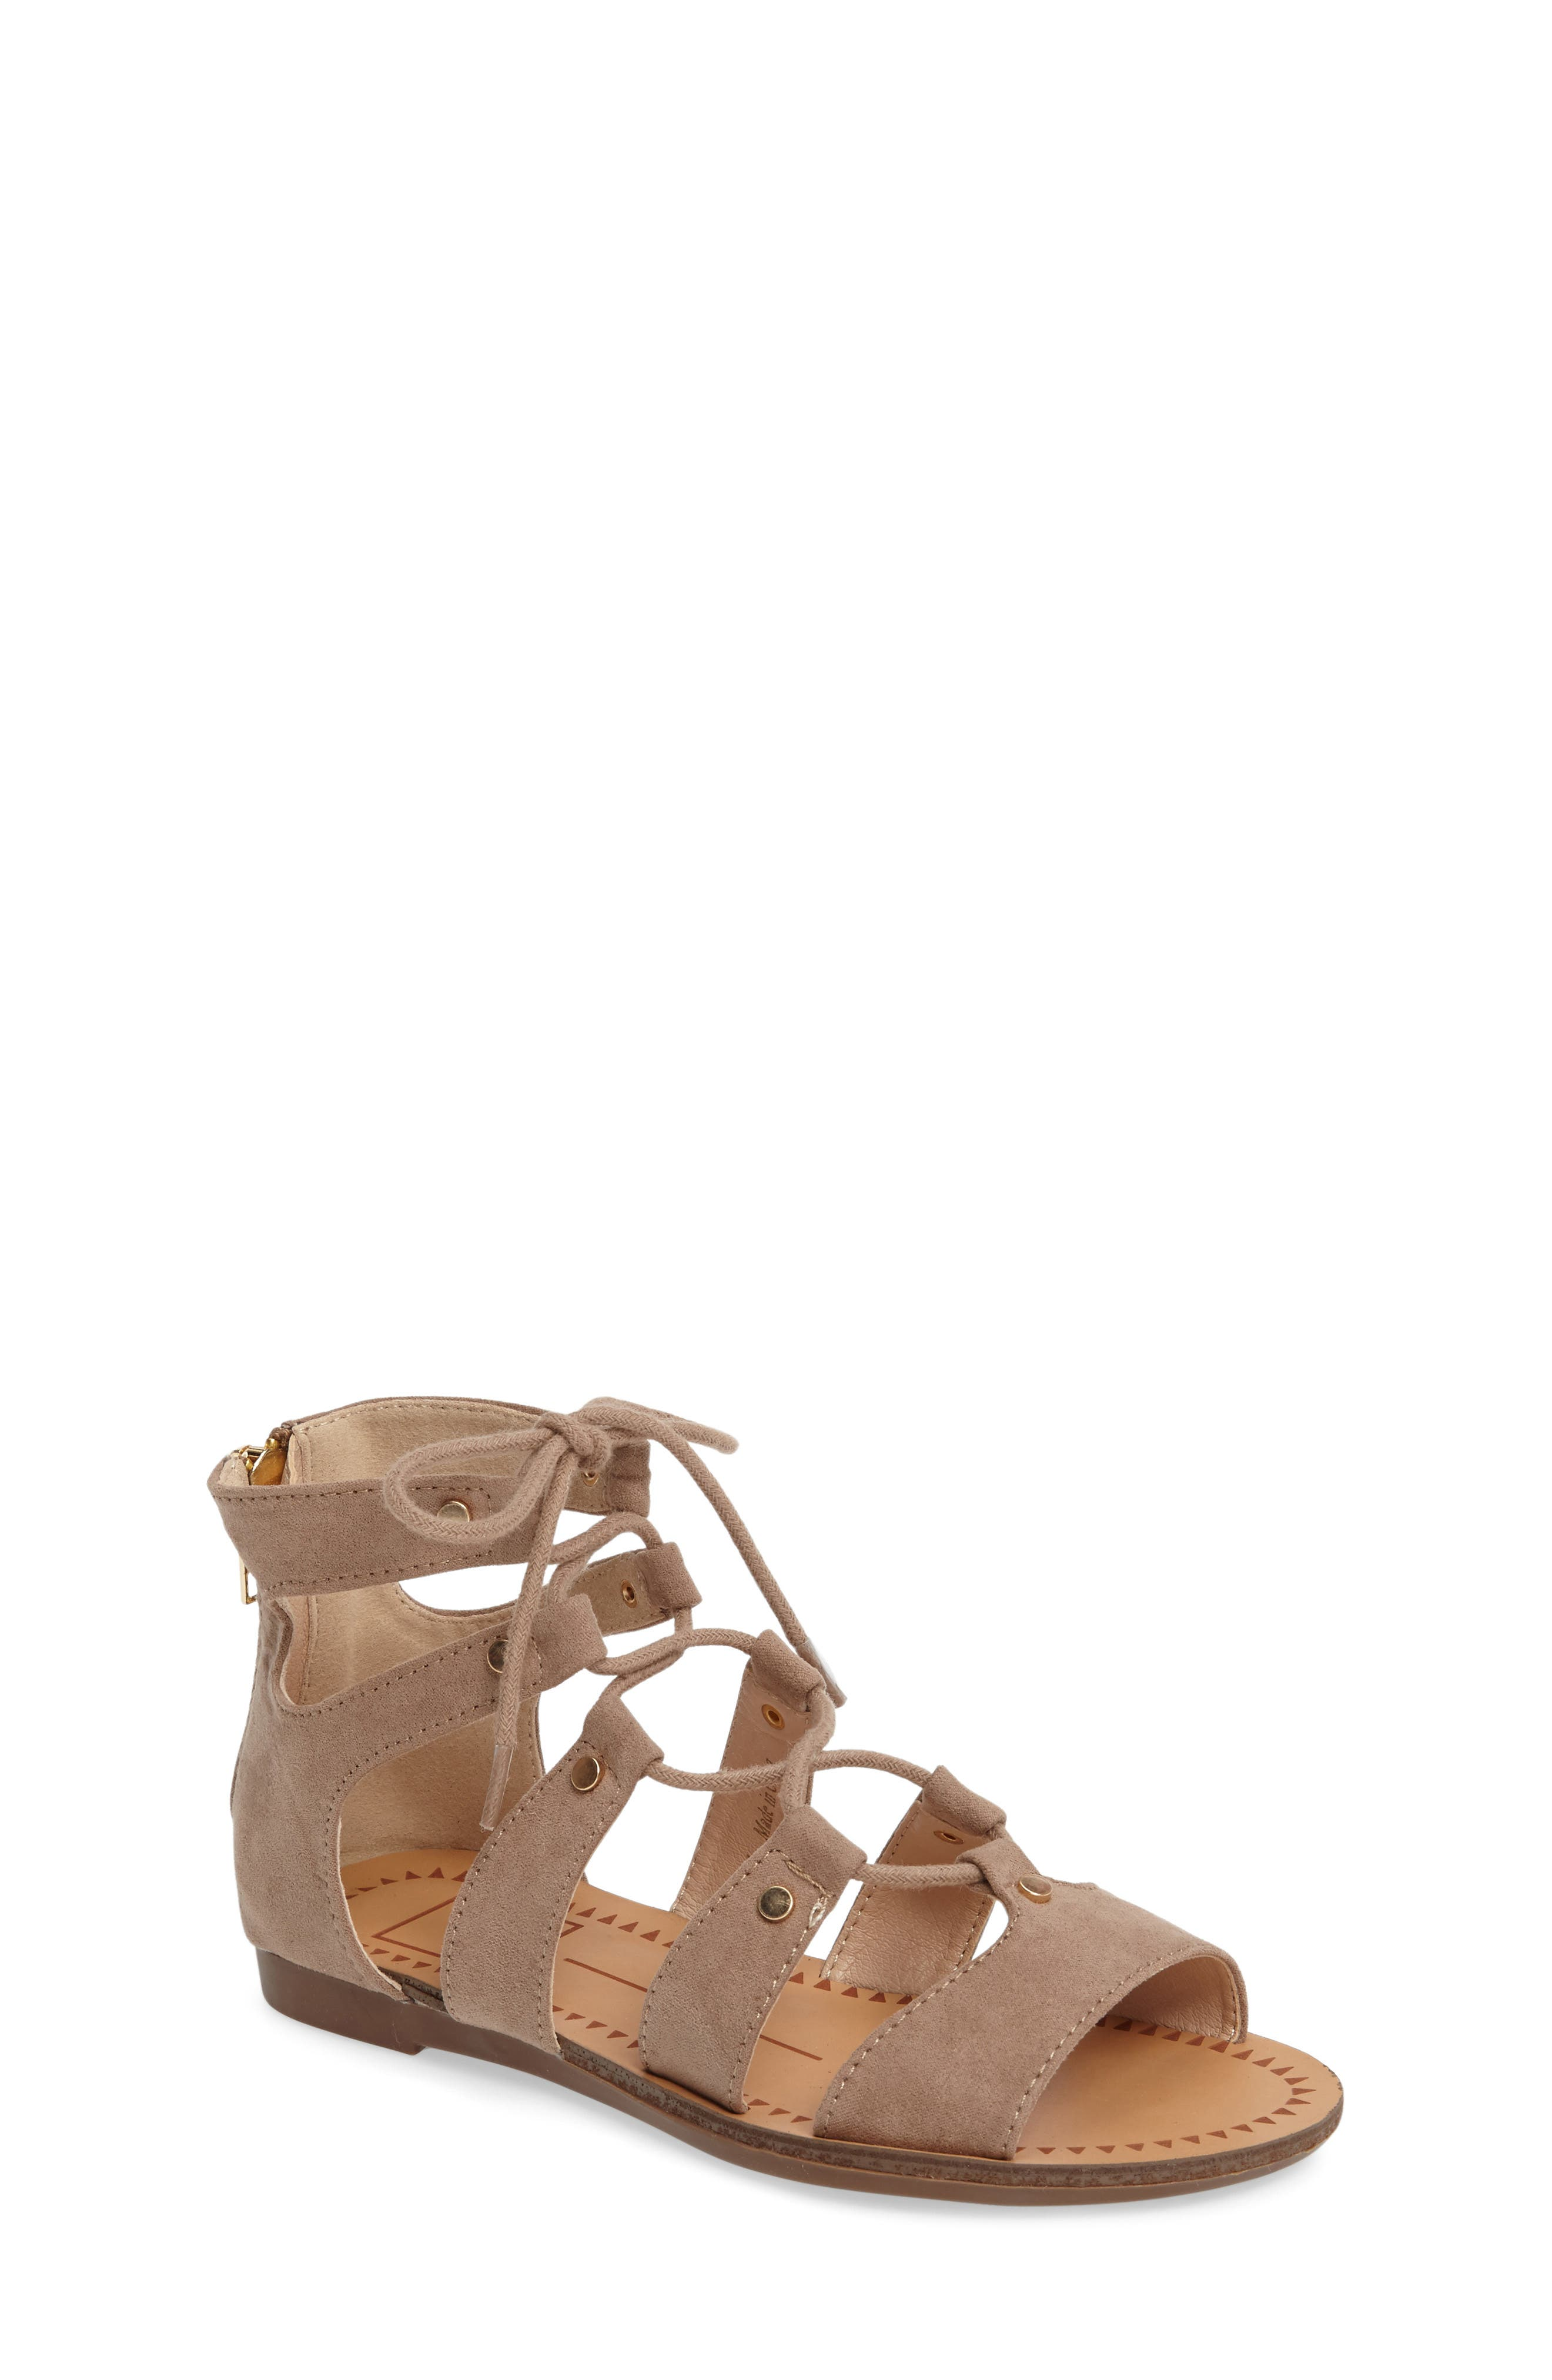 Dolce Vita Footwear 'Brooke' Ghillie Sandal (Toddler, Little Kid & Big Kid)